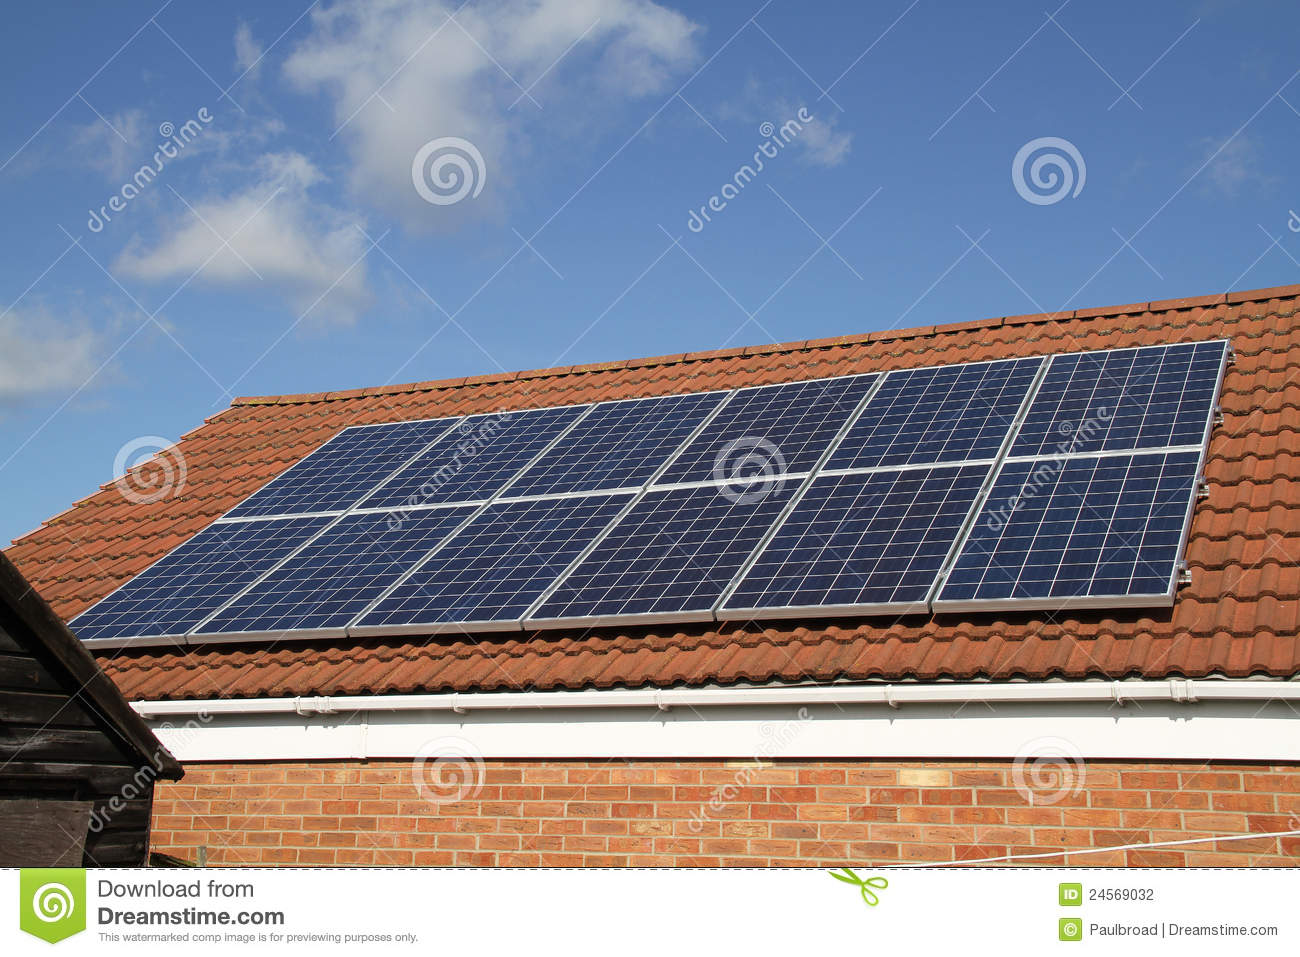 Solar Panels Stock Photo Image Of Selenium Environment 24569032 Ford Panel Roof Array On House In Uk Facing South To Generate Electricity